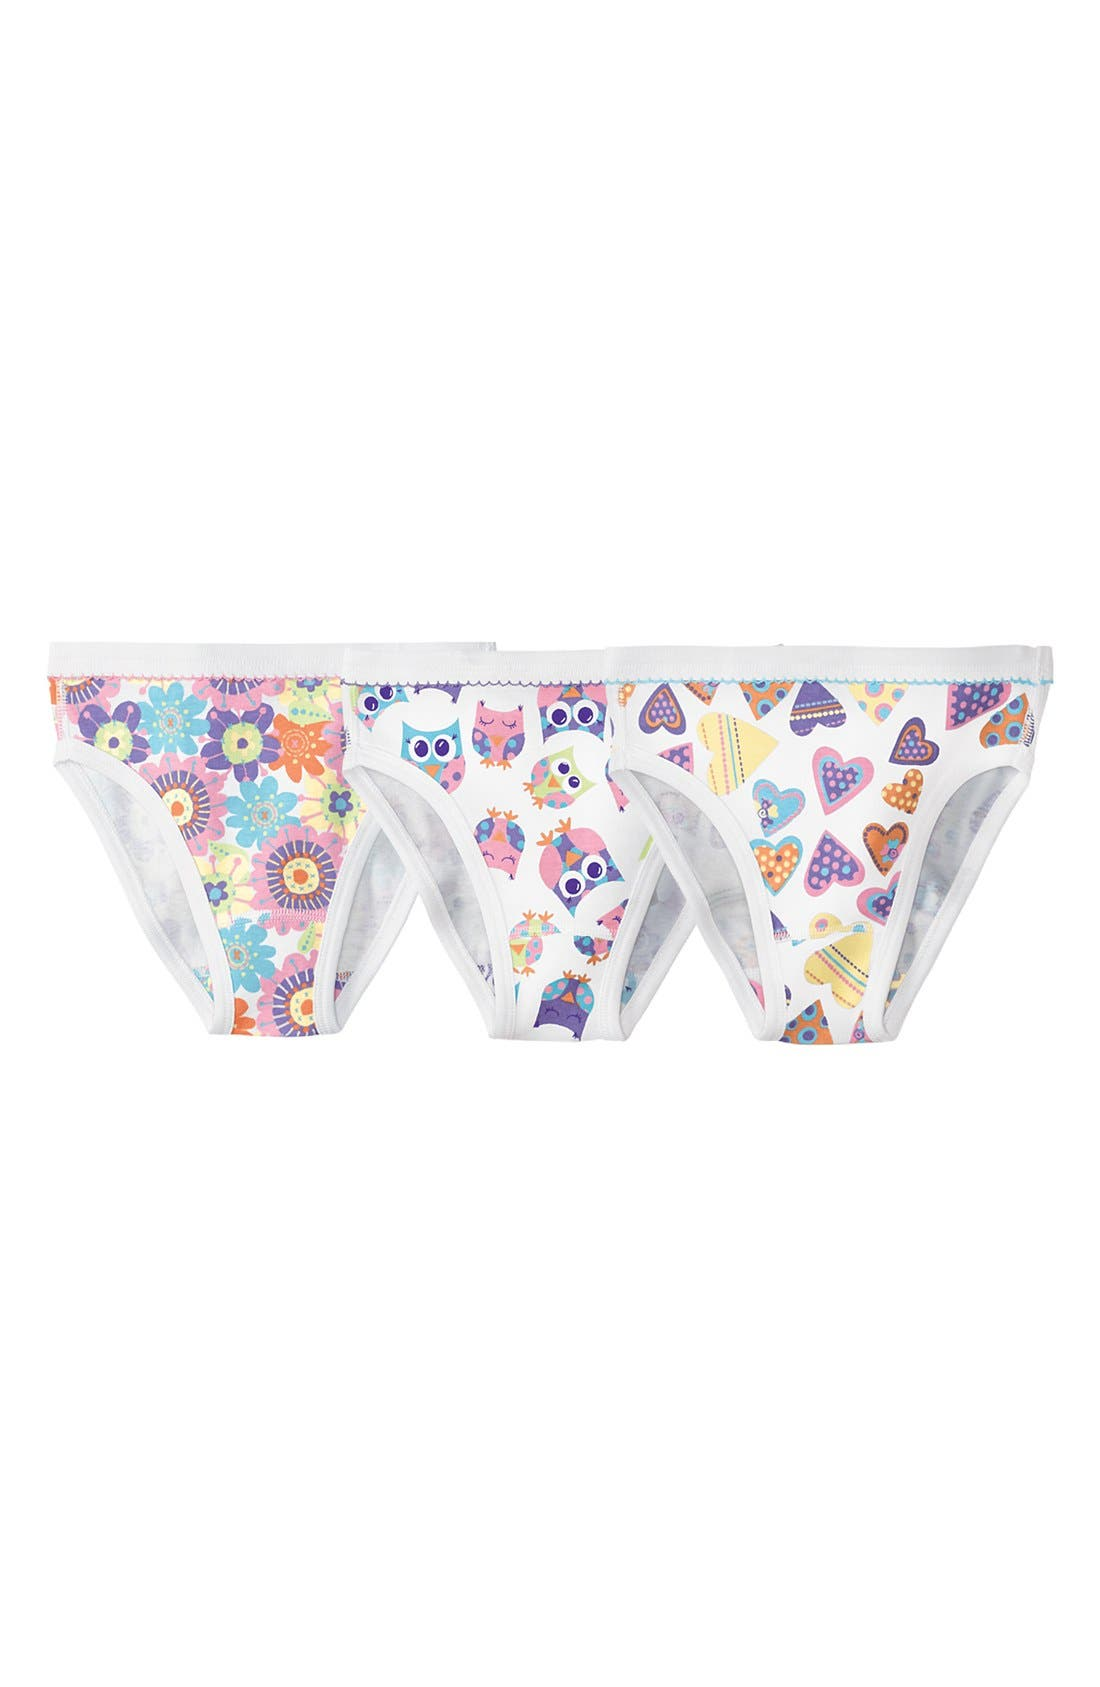 Alternate Image 1 Selected - Hanna Andersson Organic Cotton Hipster Briefs (3-Pack) (Little Girls & Big Girls)